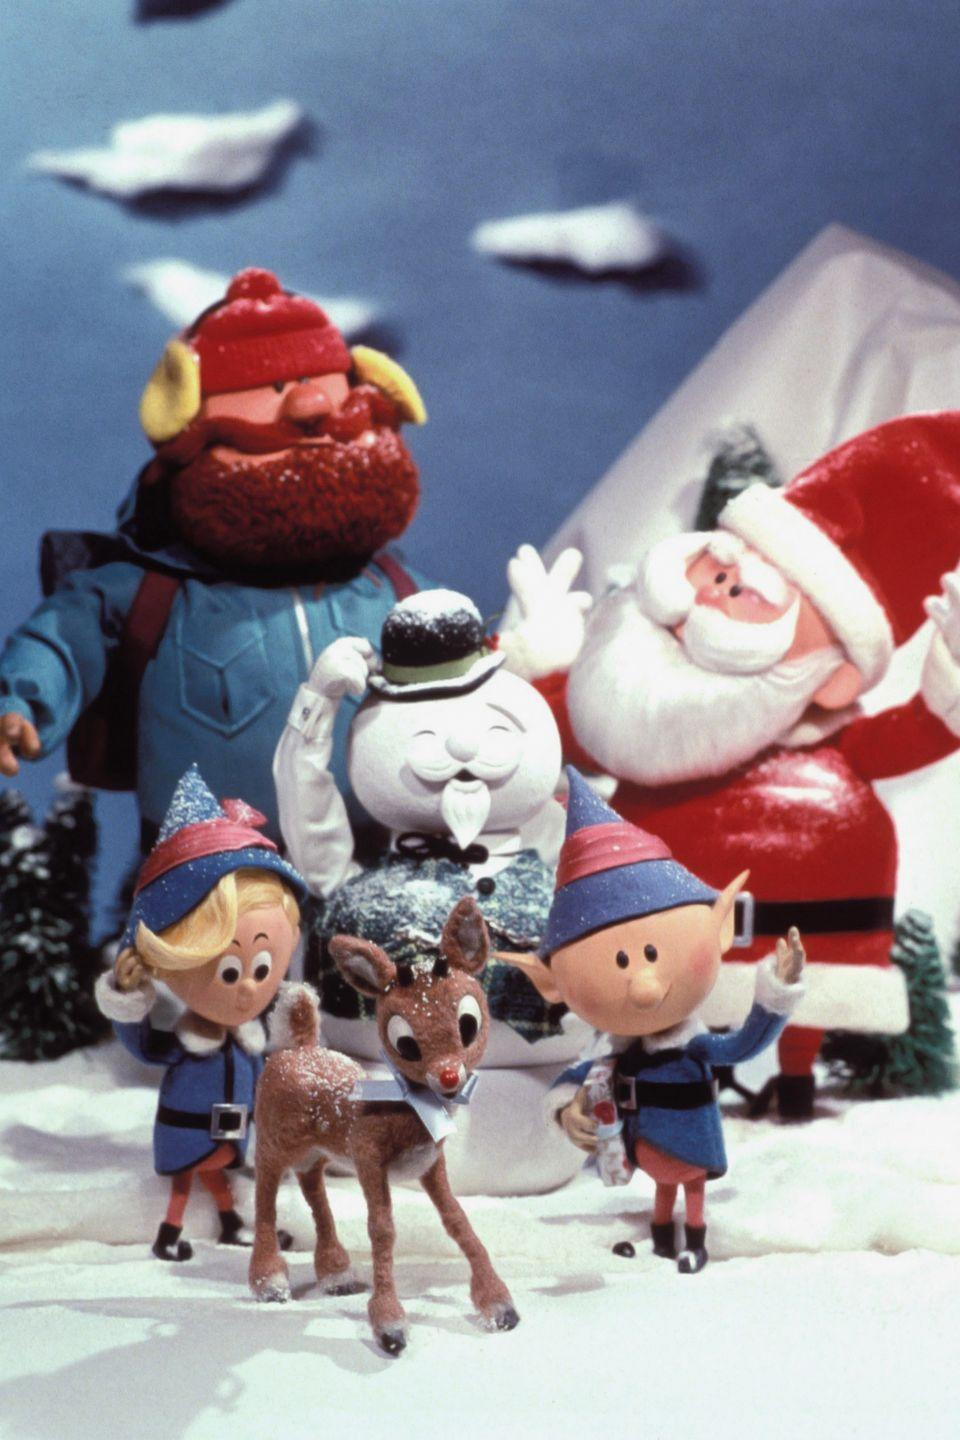 """<p>Technically a TV special that could never have known its 50+-year endurance, Rudolph plus Frosty and their <a href=""""https://www.amazon.com/Original-Christmas-Classics-Red-Nosed-Reindeer/dp/B000R7G6JA?tag=syn-yahoo-20&ascsubtag=%5Bartid%7C10056.g.13149732%5Bsrc%7Cyahoo-us"""" rel=""""nofollow noopener"""" target=""""_blank"""" data-ylk=""""slk:companion holiday classics"""" class=""""link rapid-noclick-resp"""">companion holiday classics</a> count as a feature-length affair in our book. Plus, what's a holiday viewing roundup without a stop-motion tale narrated by Burl Ives?</p><p><em>Stream on amazon.com free with a Prime membership.</em> <a class=""""link rapid-noclick-resp"""" href=""""https://www.amazon.com/Rudolph-Nosed-Reindeer-Billie-Richards/dp/B076Y29GJF/?tag=syn-yahoo-20&ascsubtag=%5Bartid%7C10056.g.13149732%5Bsrc%7Cyahoo-us"""" rel=""""nofollow noopener"""" target=""""_blank"""" data-ylk=""""slk:WATCH"""">WATCH</a></p>"""